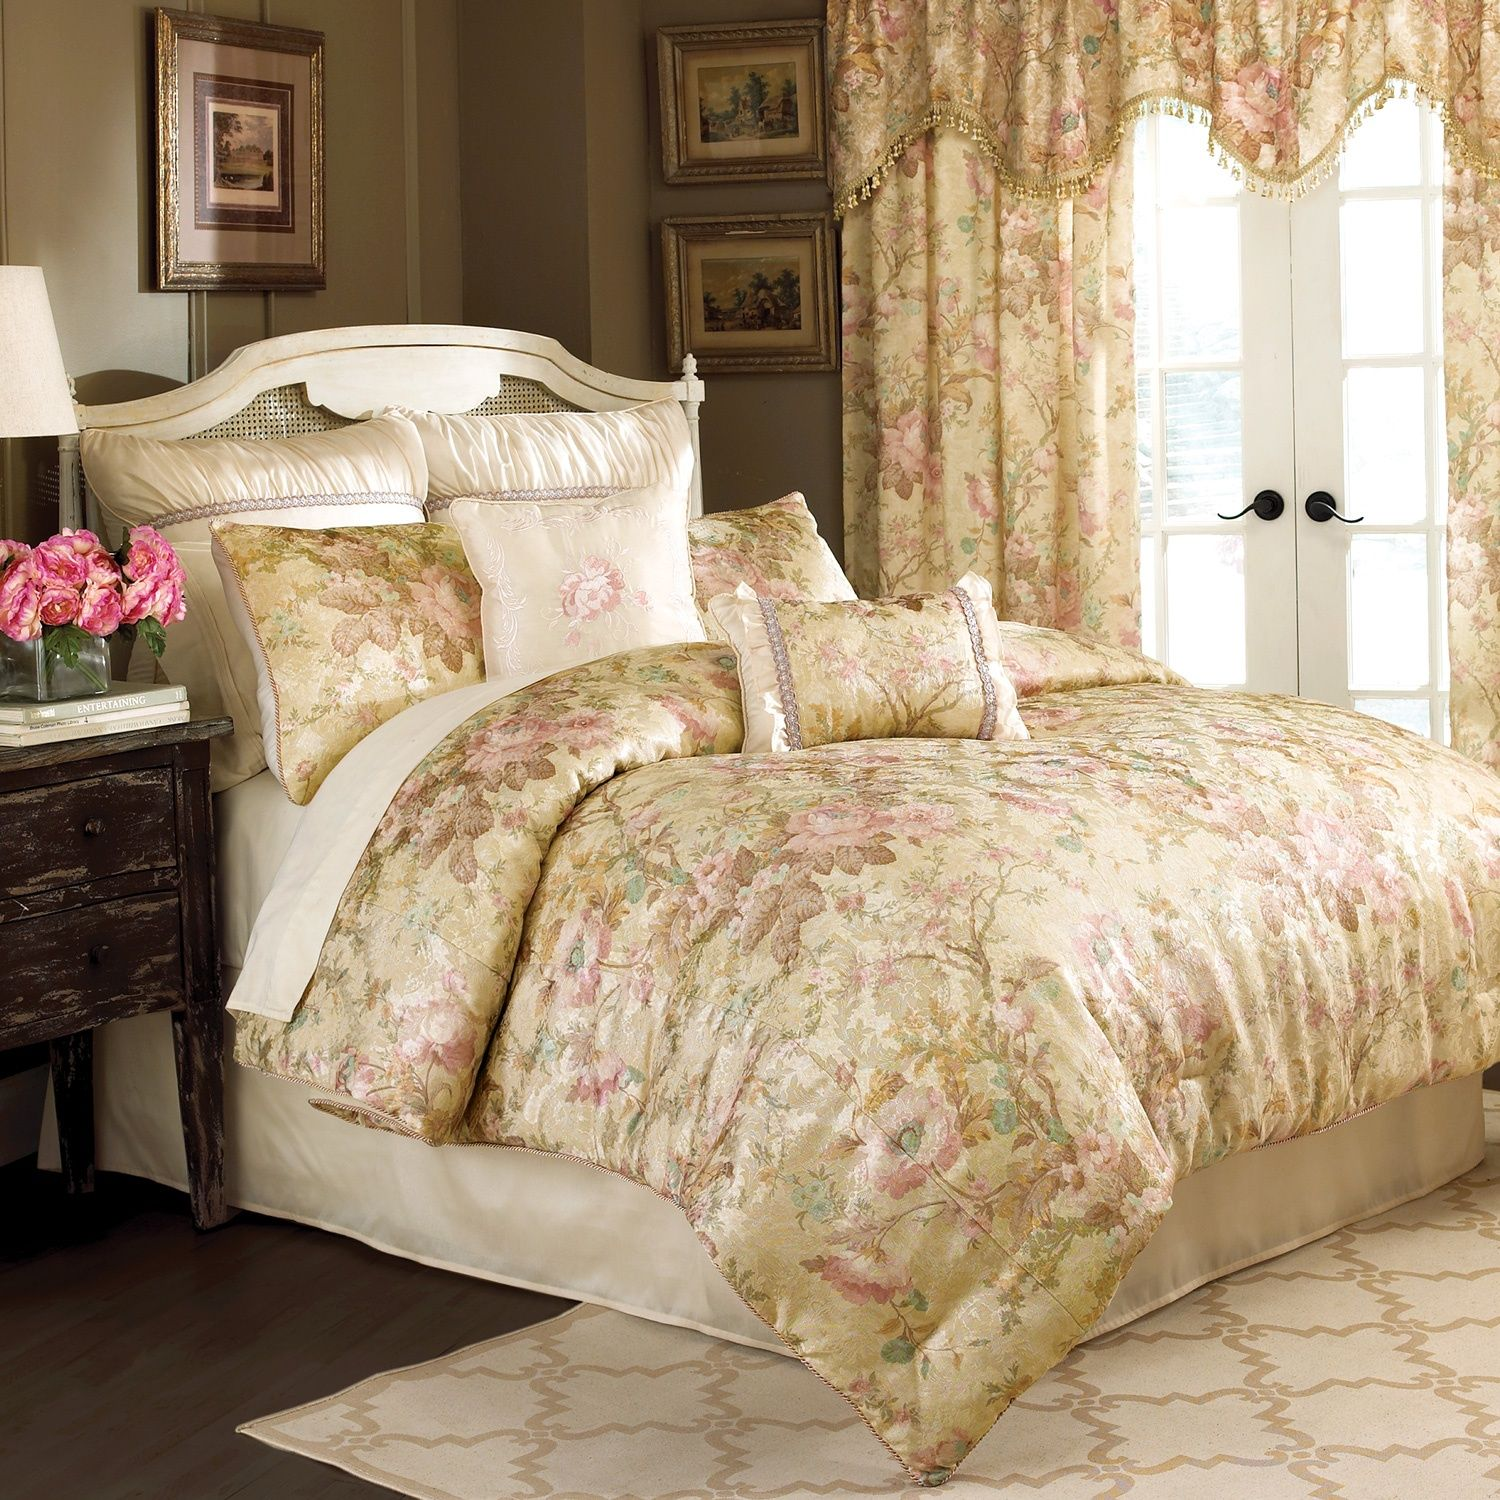 Rose Fashion Store Home: Croscill Chapel Hill Rose Garden Bedding